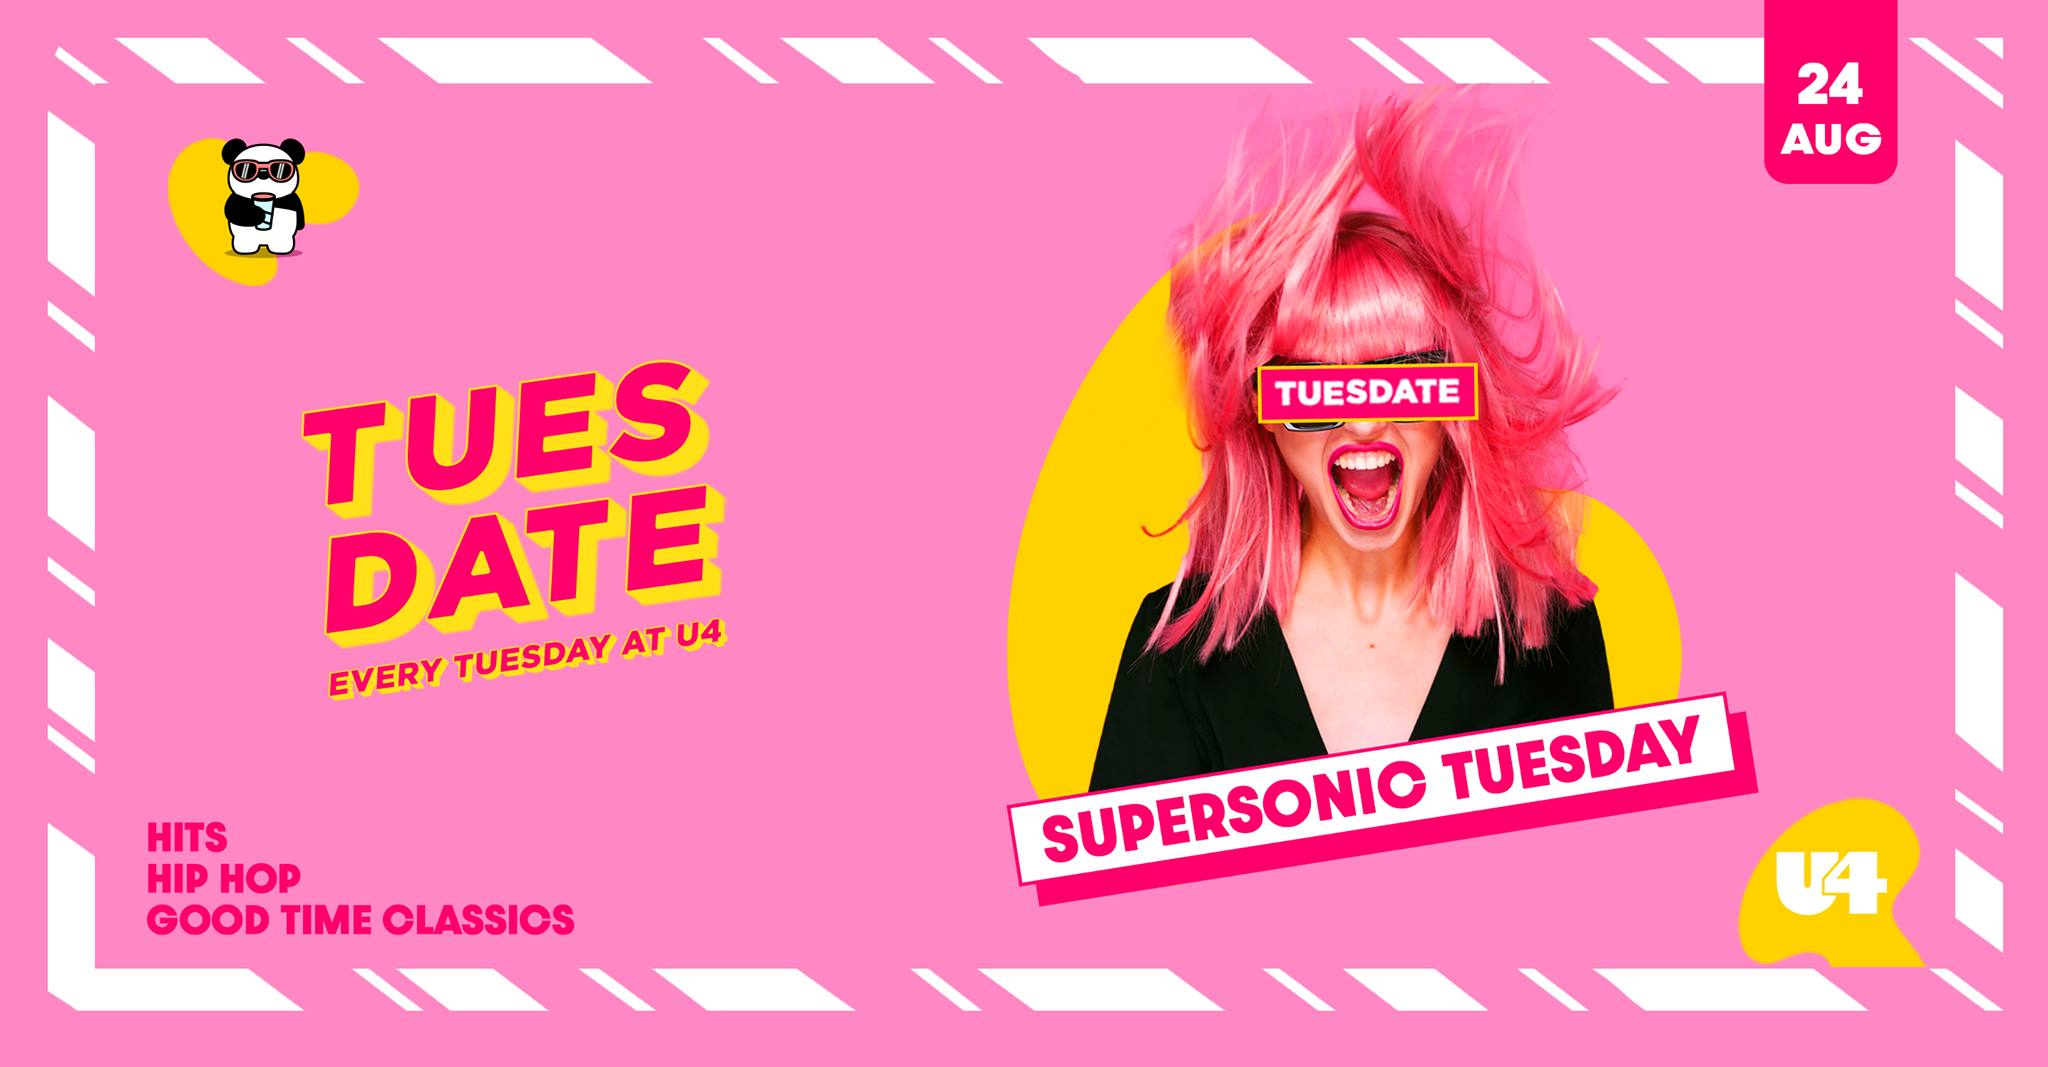 Events Wien: Supersonic Tuesday | Tuesdate | 24.08.